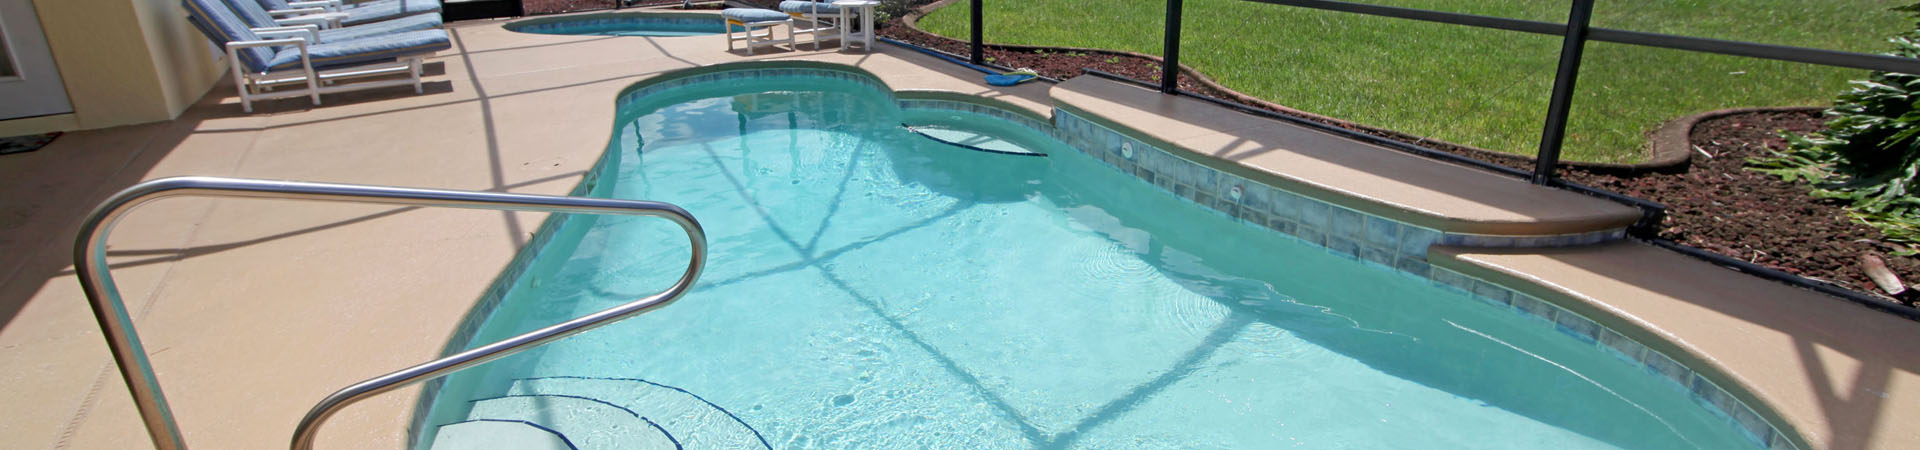 Residential Pool with seating | Stahlman Pool Company - Naples, Florida